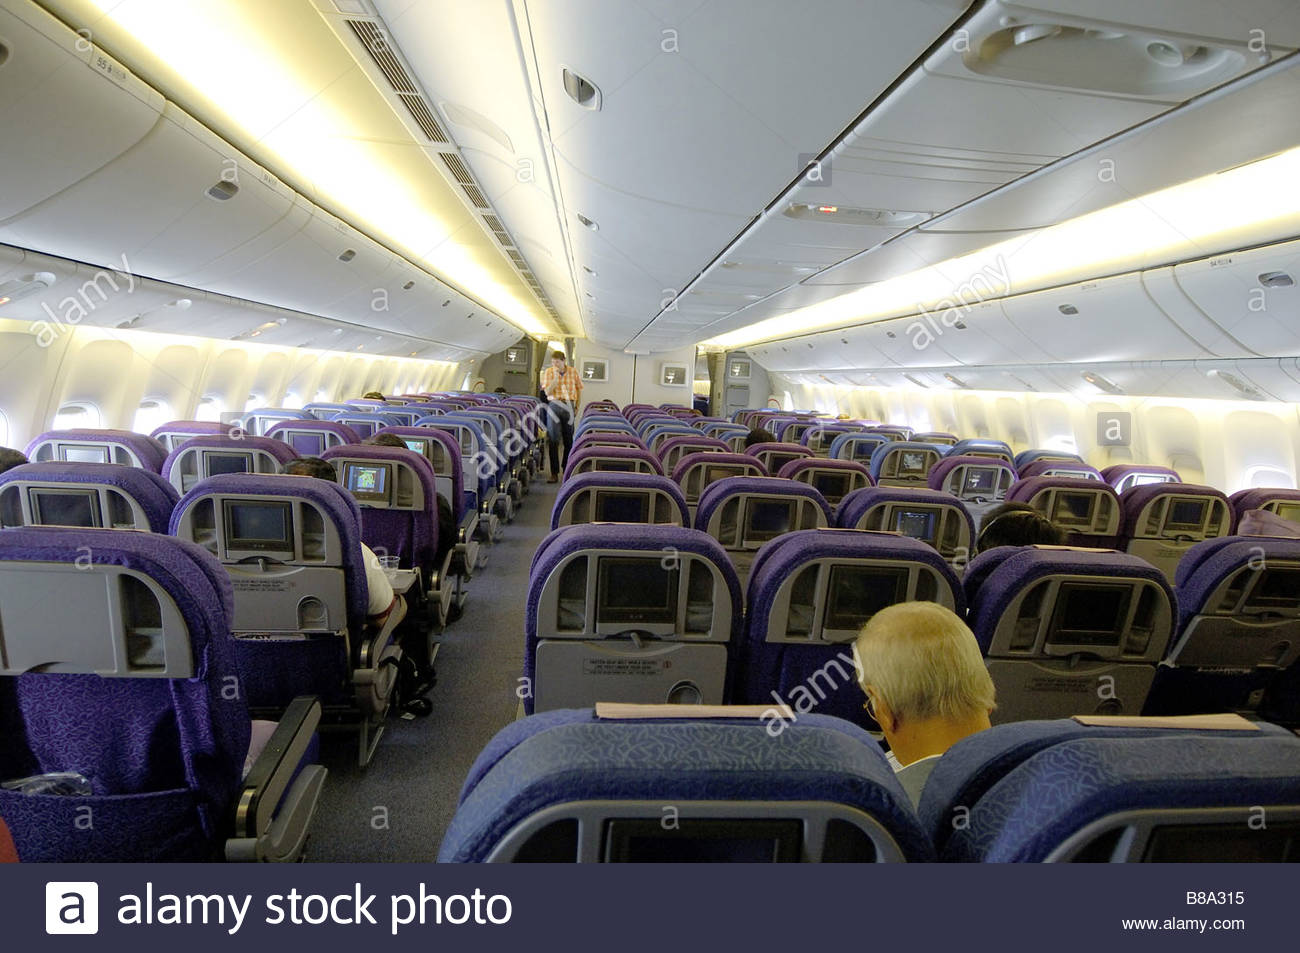 Interior Airplane Of Singapore Airlines ; Boeing 777 ; South East Asia